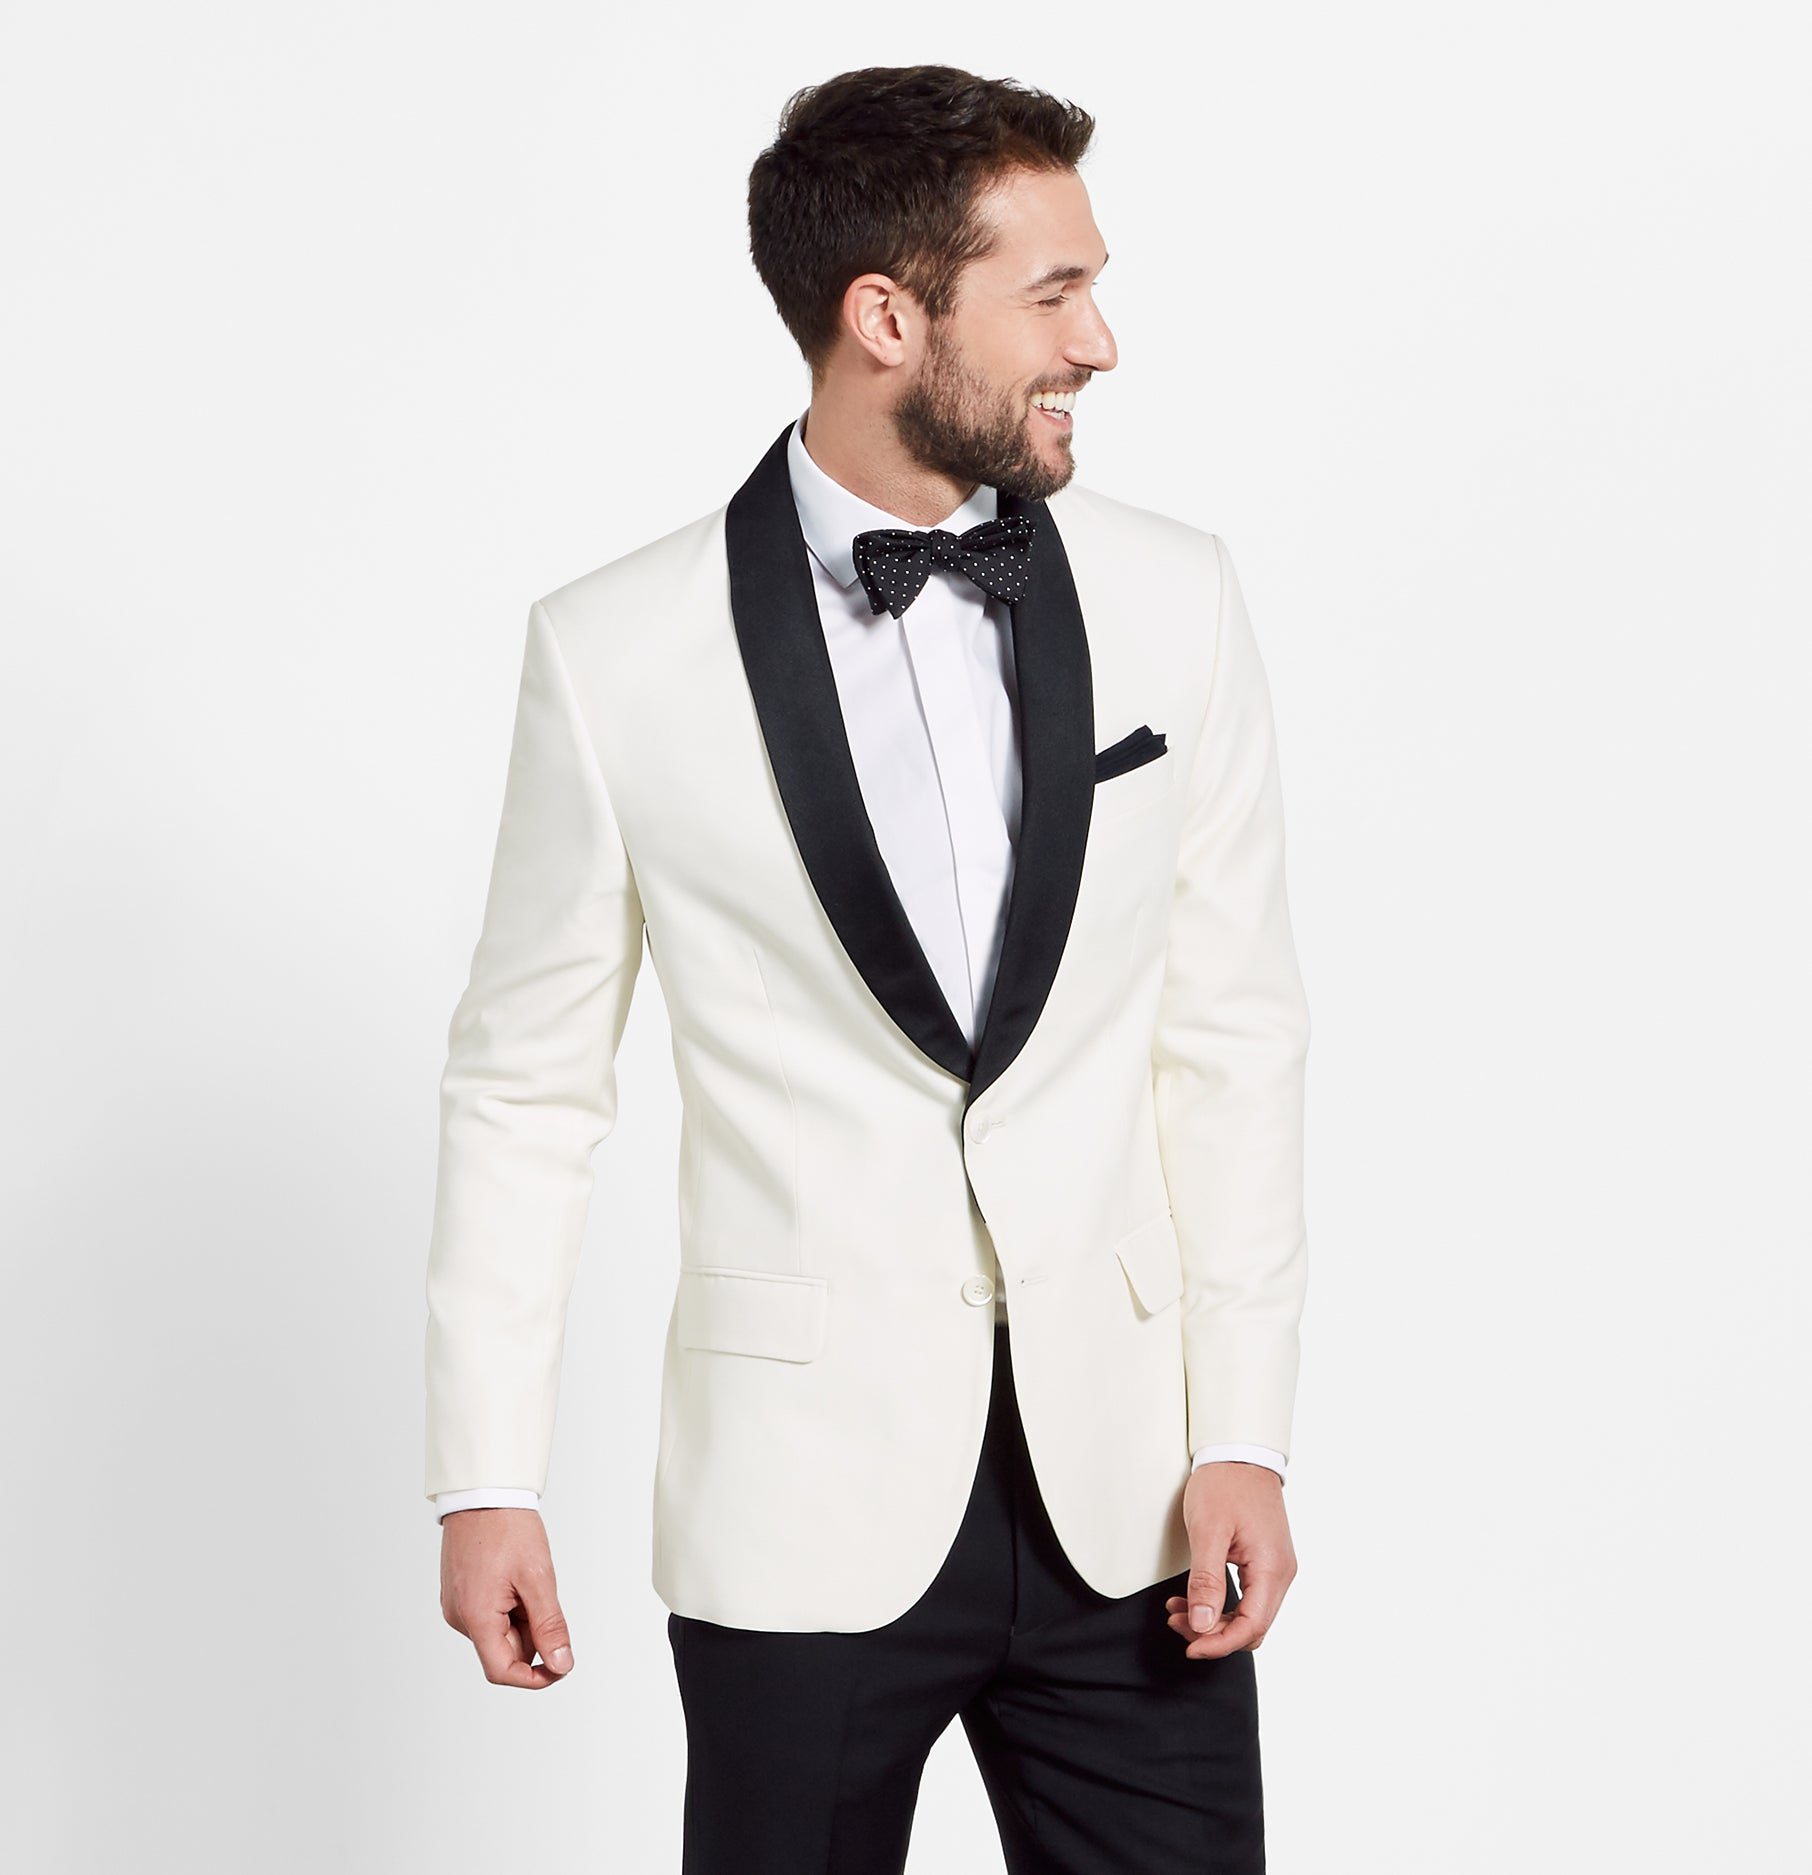 Contrast Shawl Jacket Tuxedo | The Black Tux